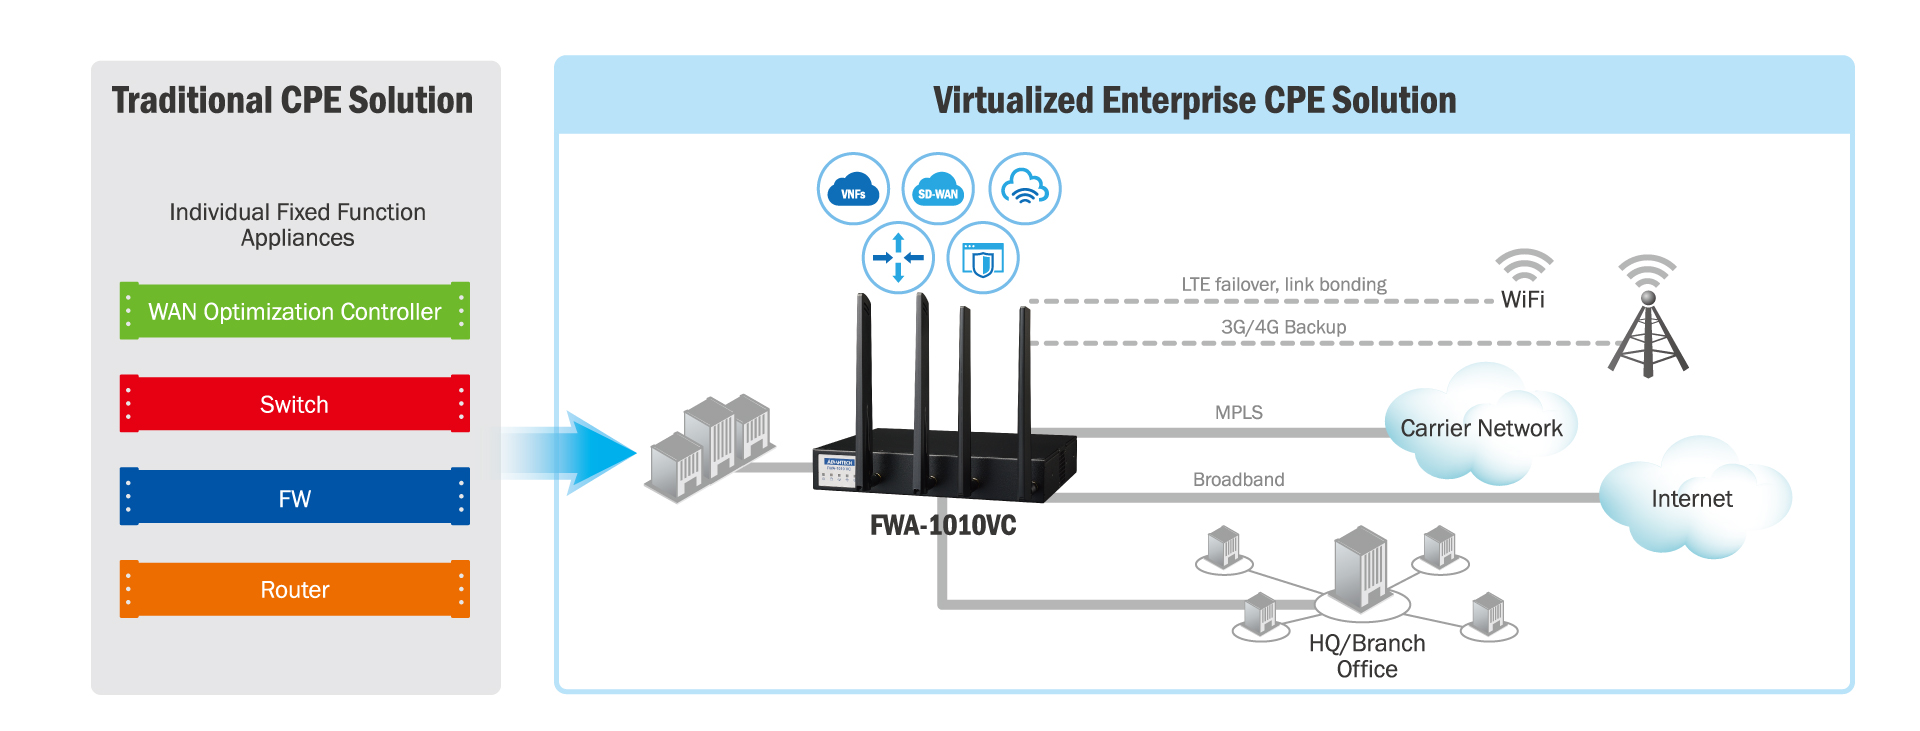 Universal Cpe Deployment Advantech Wireless Office Network Diagram In A Virtual Vcpe Model All The Functions Can Be Consolidated Using Software Based Vnfs Running On Top Of